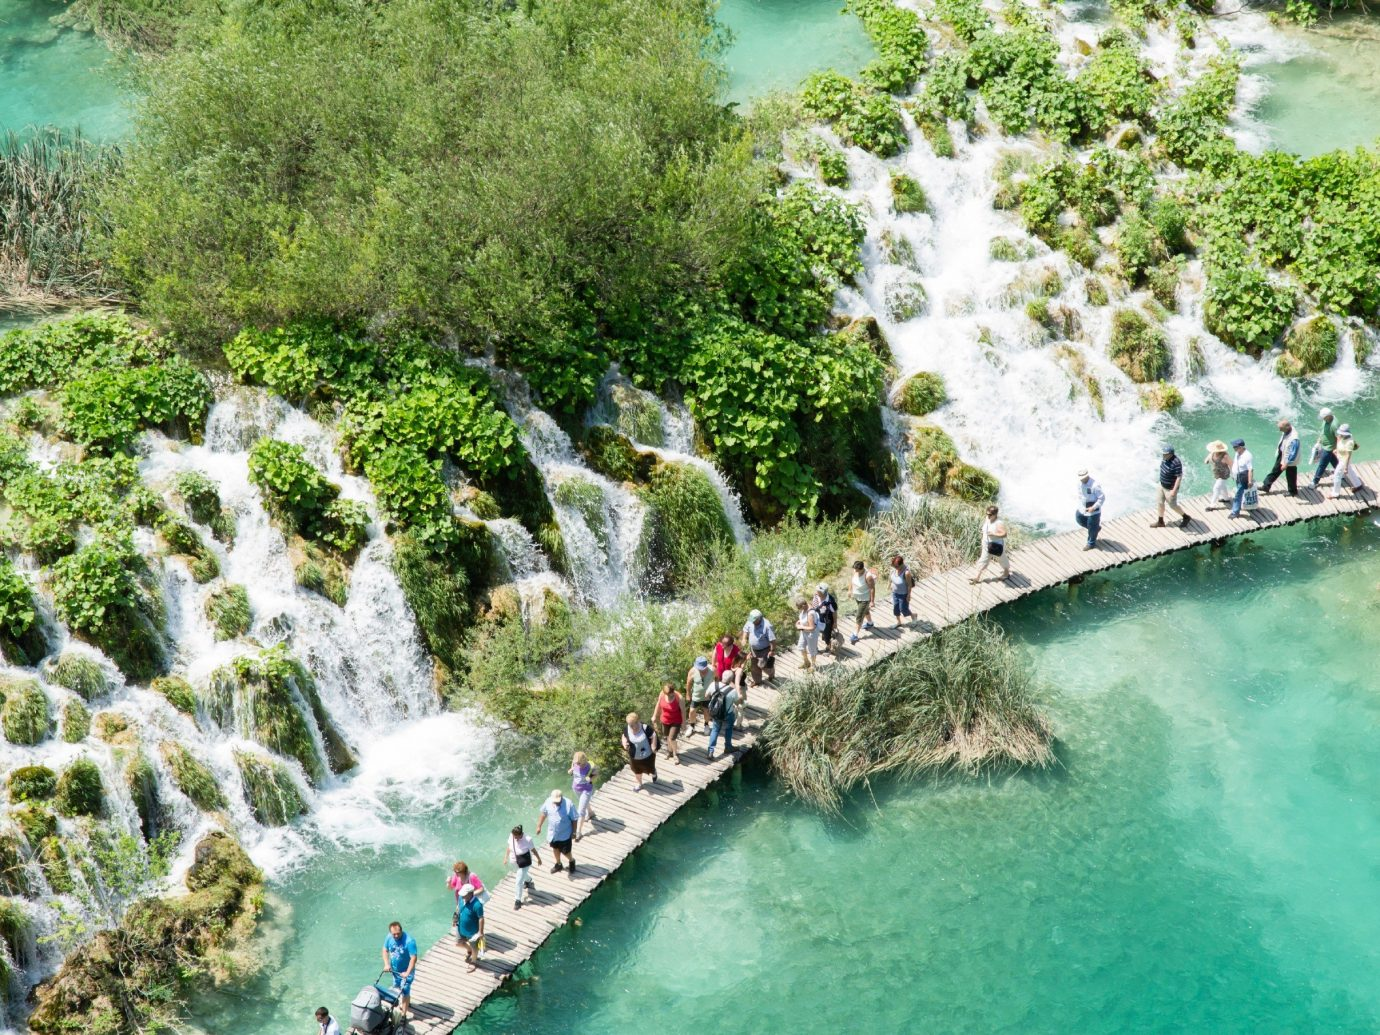 Trip Ideas water tree outdoor River watercourse Nature tourism waterway water feature rapid wave surrounded